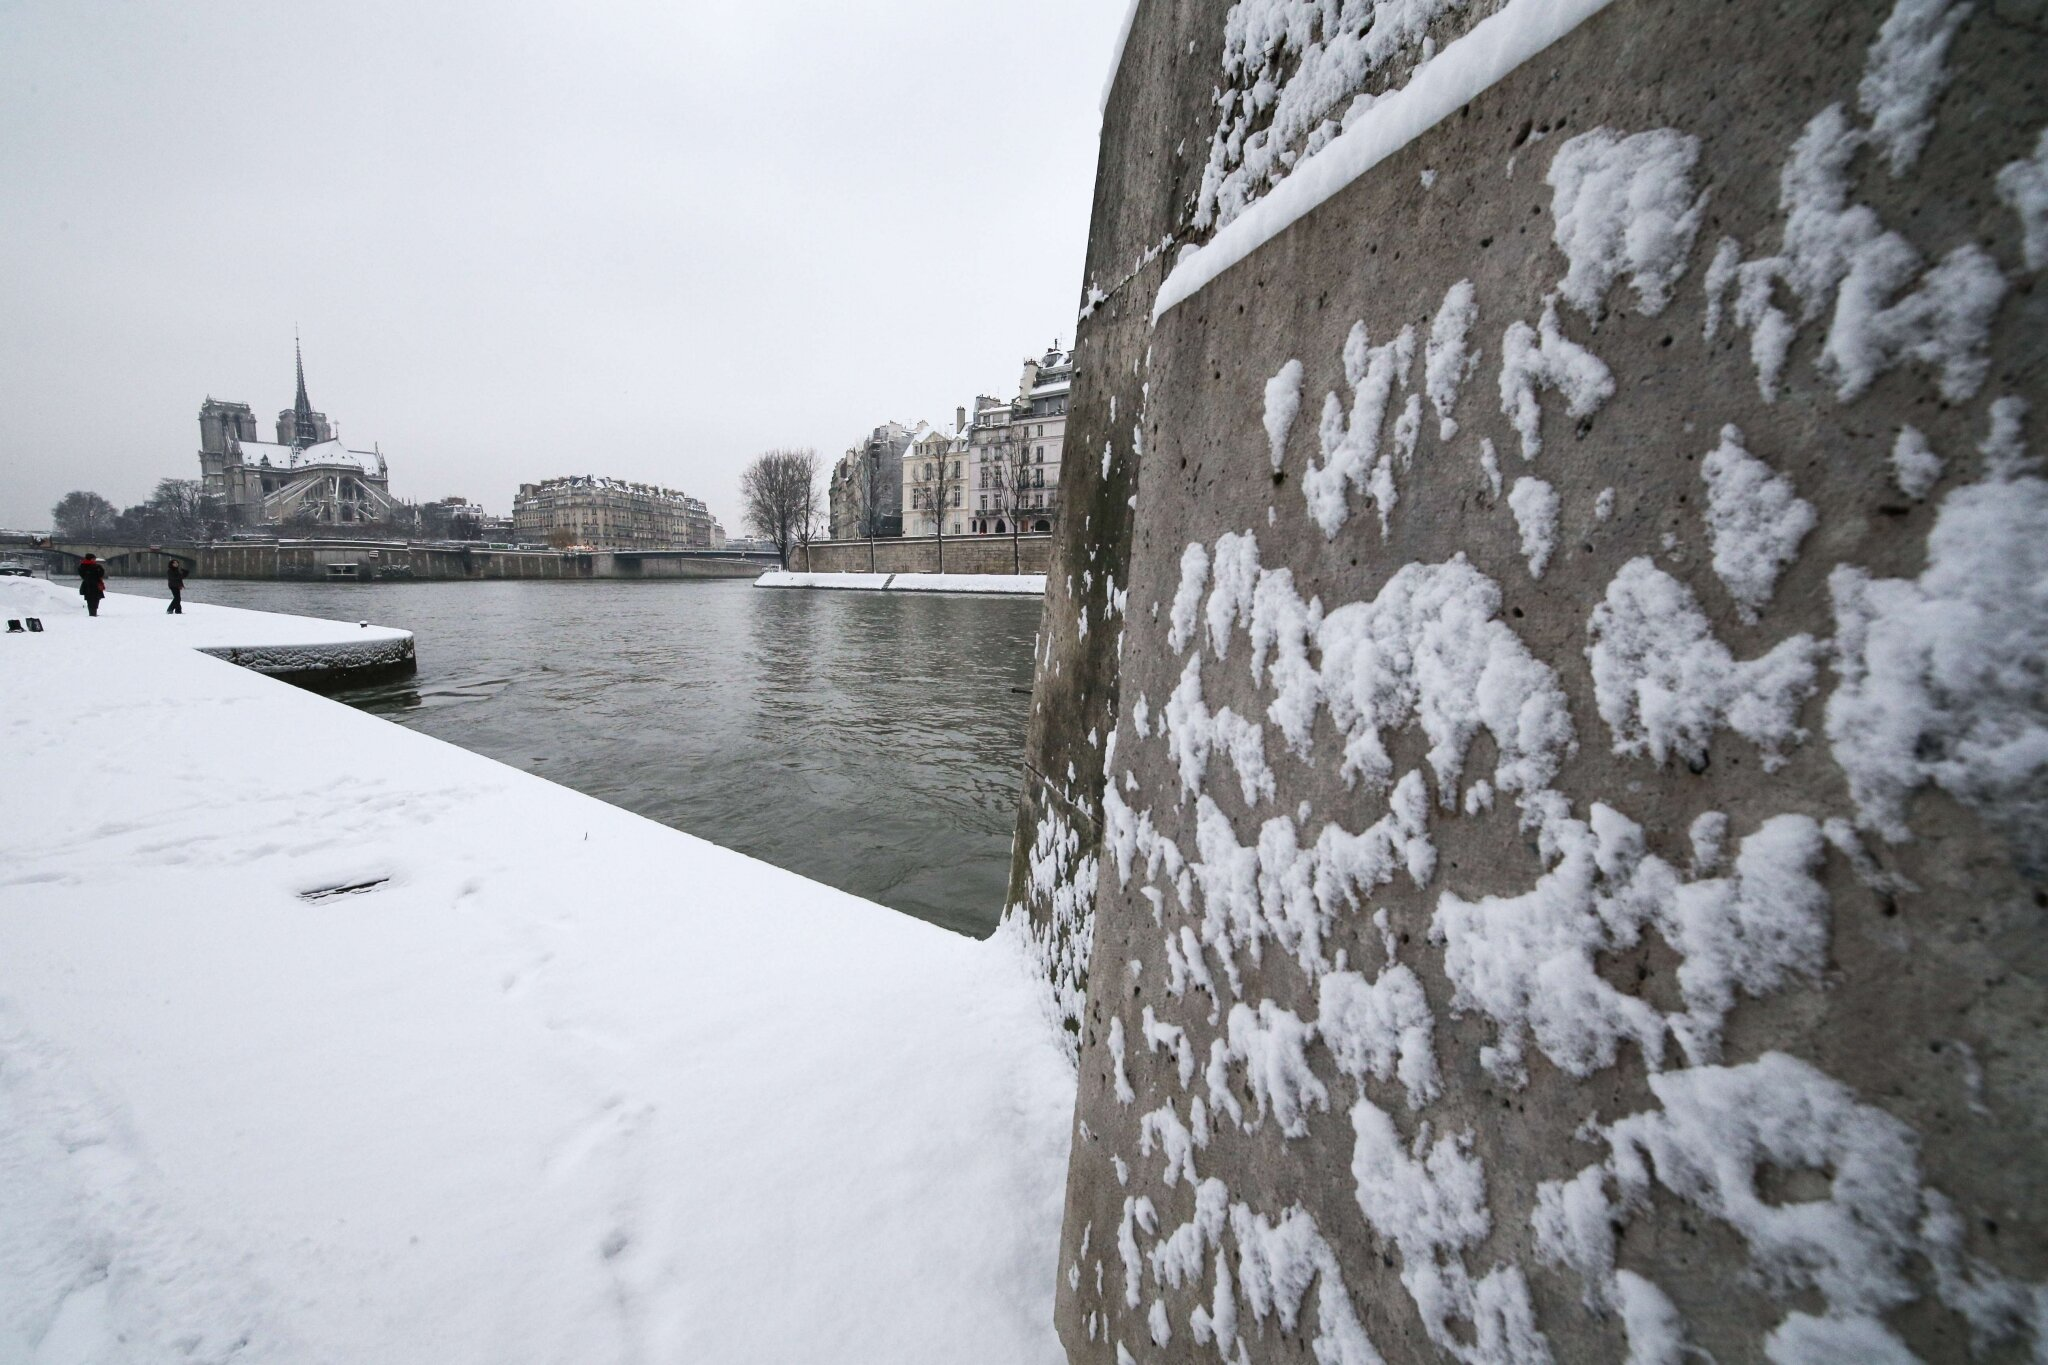 Paris sous la neige. © Photo Michel Stoupak. Sam 19.01.2013, 09:46.